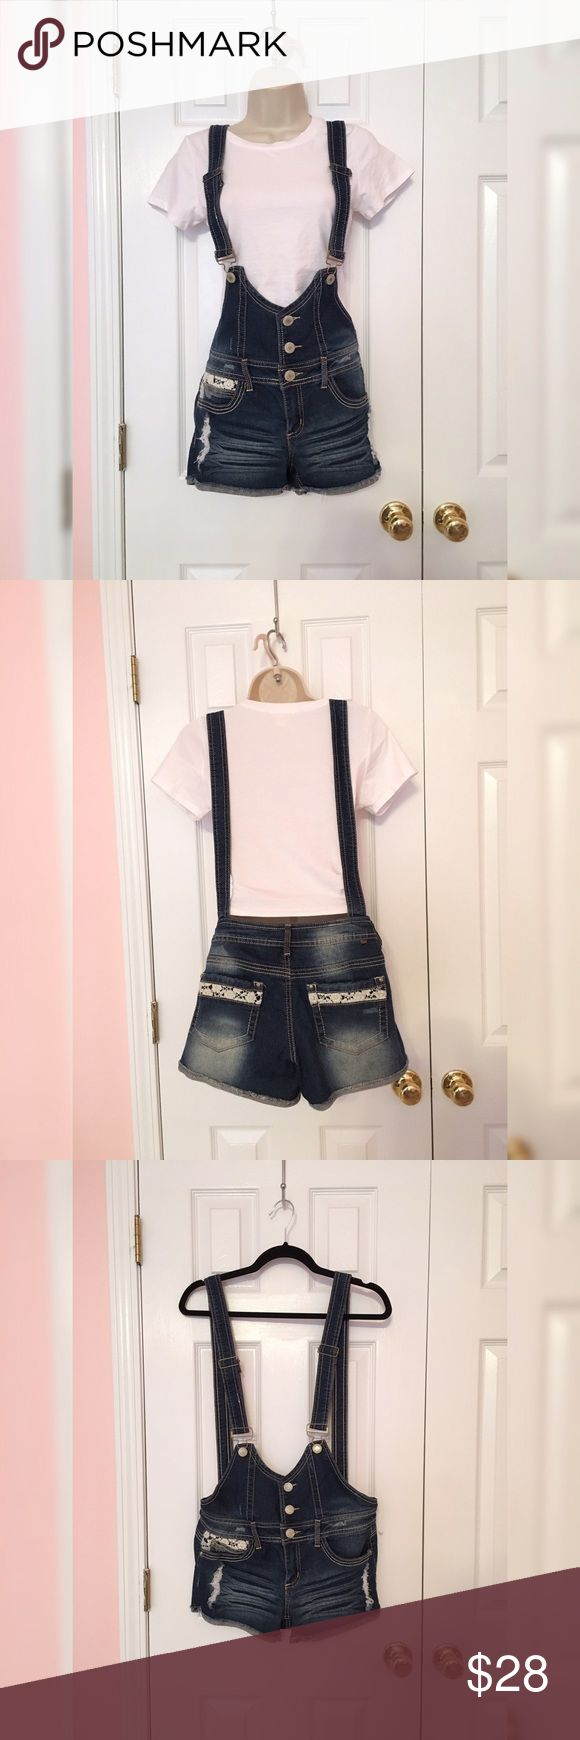 """Jean Overall Shorts Overall shorts with pretty lace detail on 3 of the 4 pockets. Dark wash jean material. 76% cotton, 22% polyester, 2% spandex. Worn a few times, in good condition. Purchased from Kohl's. I'm 5'7"""" & they're too short on me. *Crop top not for sale.* Almost Famous Jeans Overalls"""